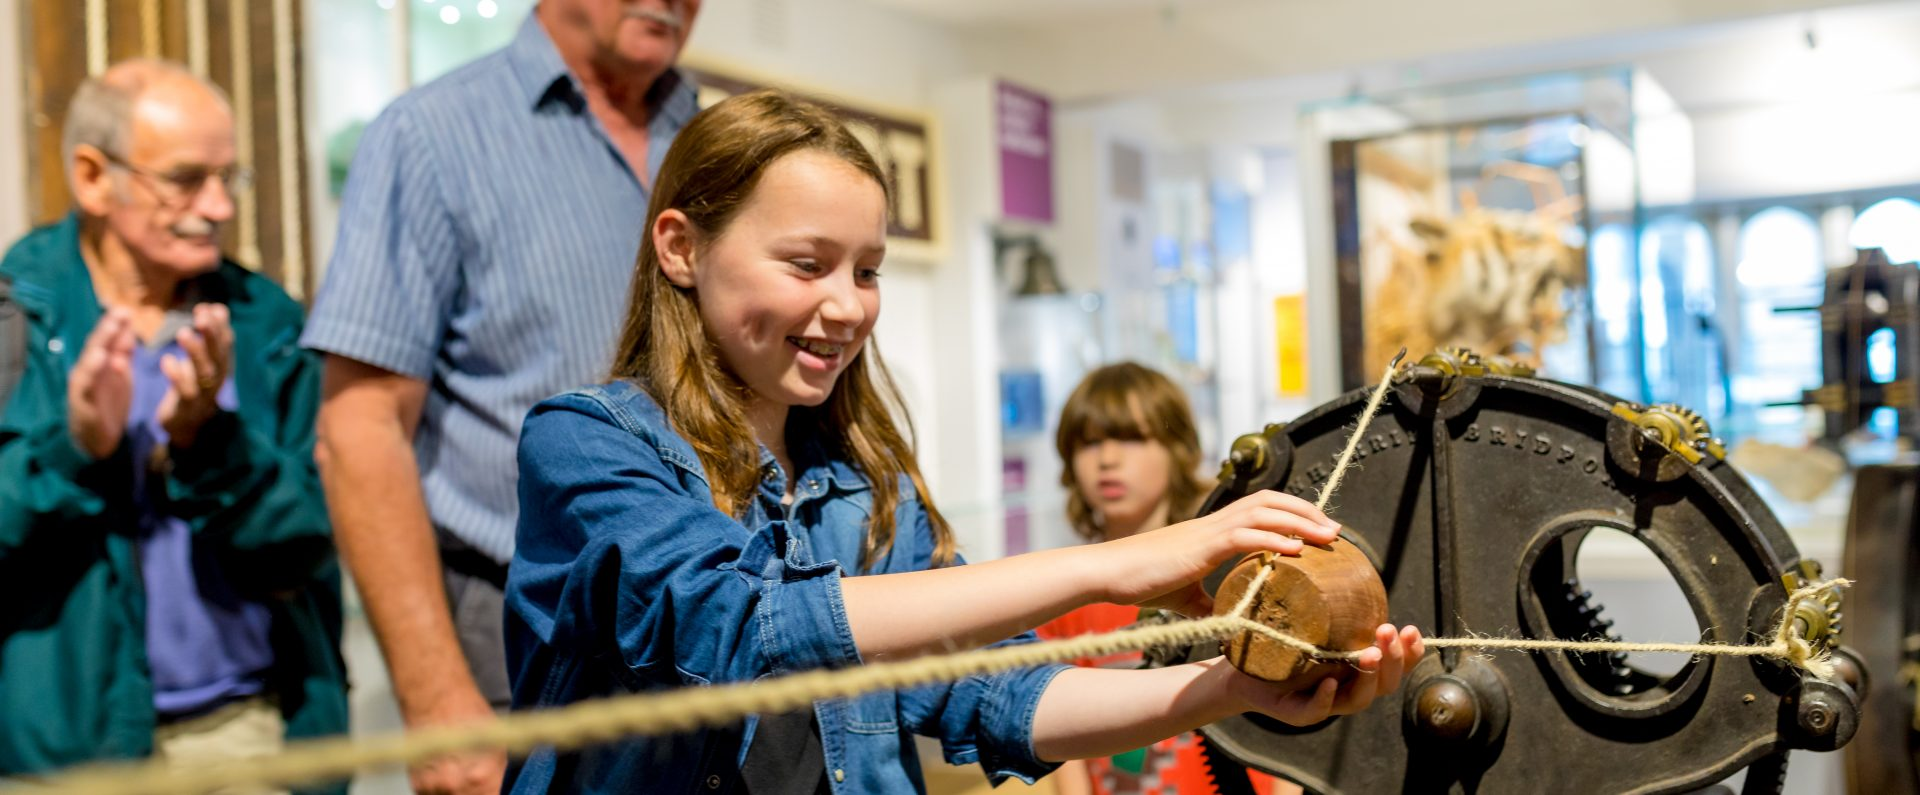 Visitors young and old enjoying learning about the history of rope making at Bridport Museum